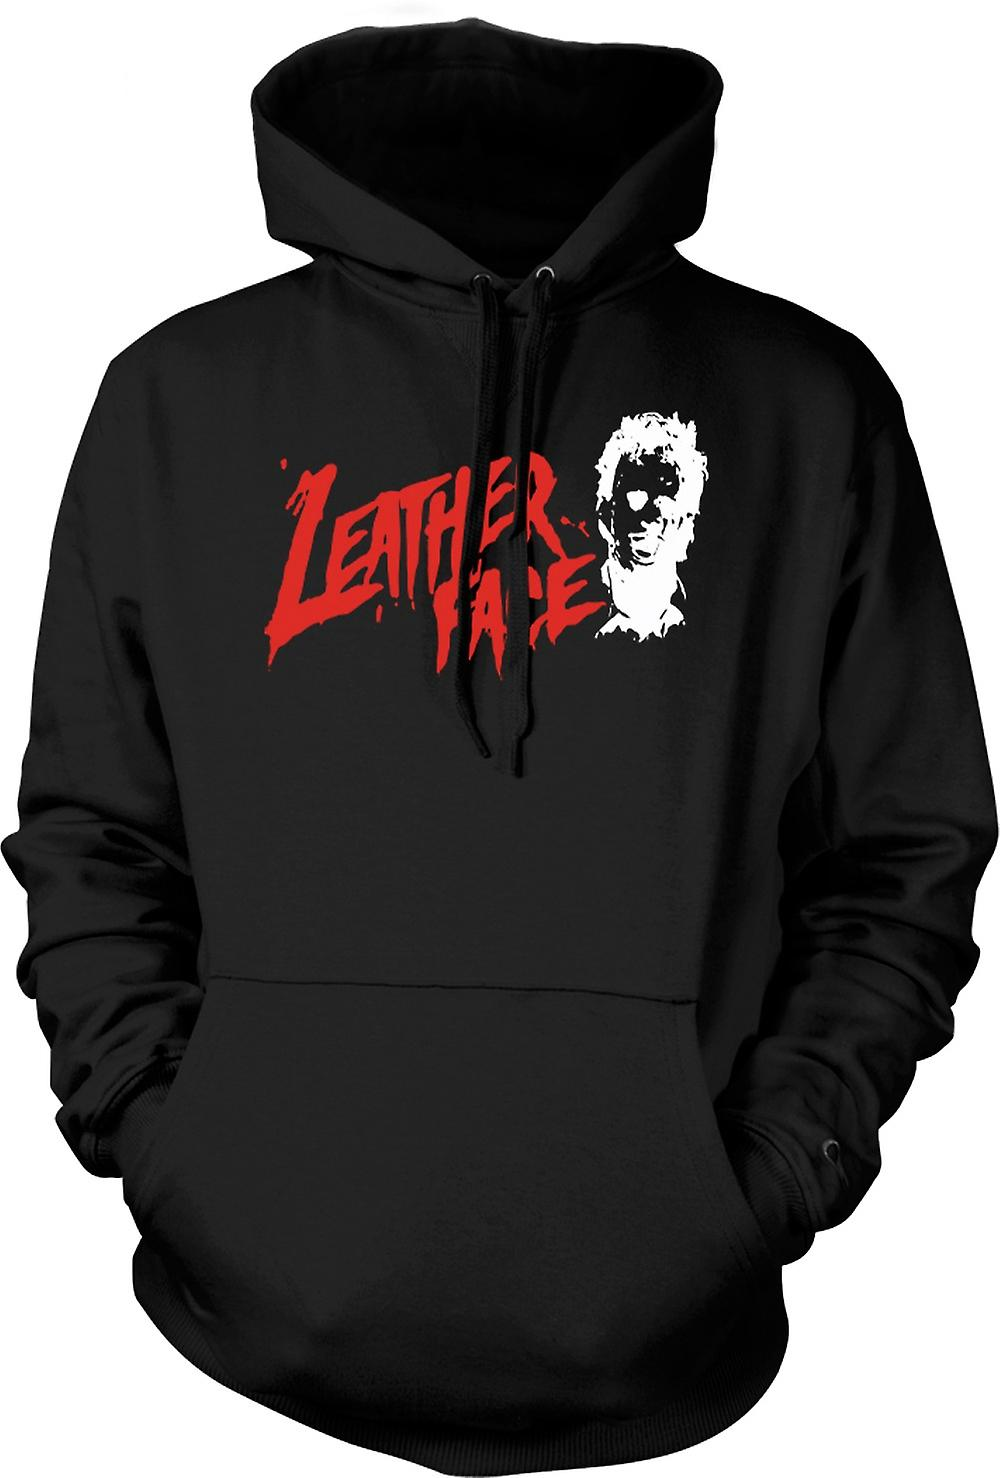 Mens Hoodie - Leather Face - Texas Chainsaw - Horror